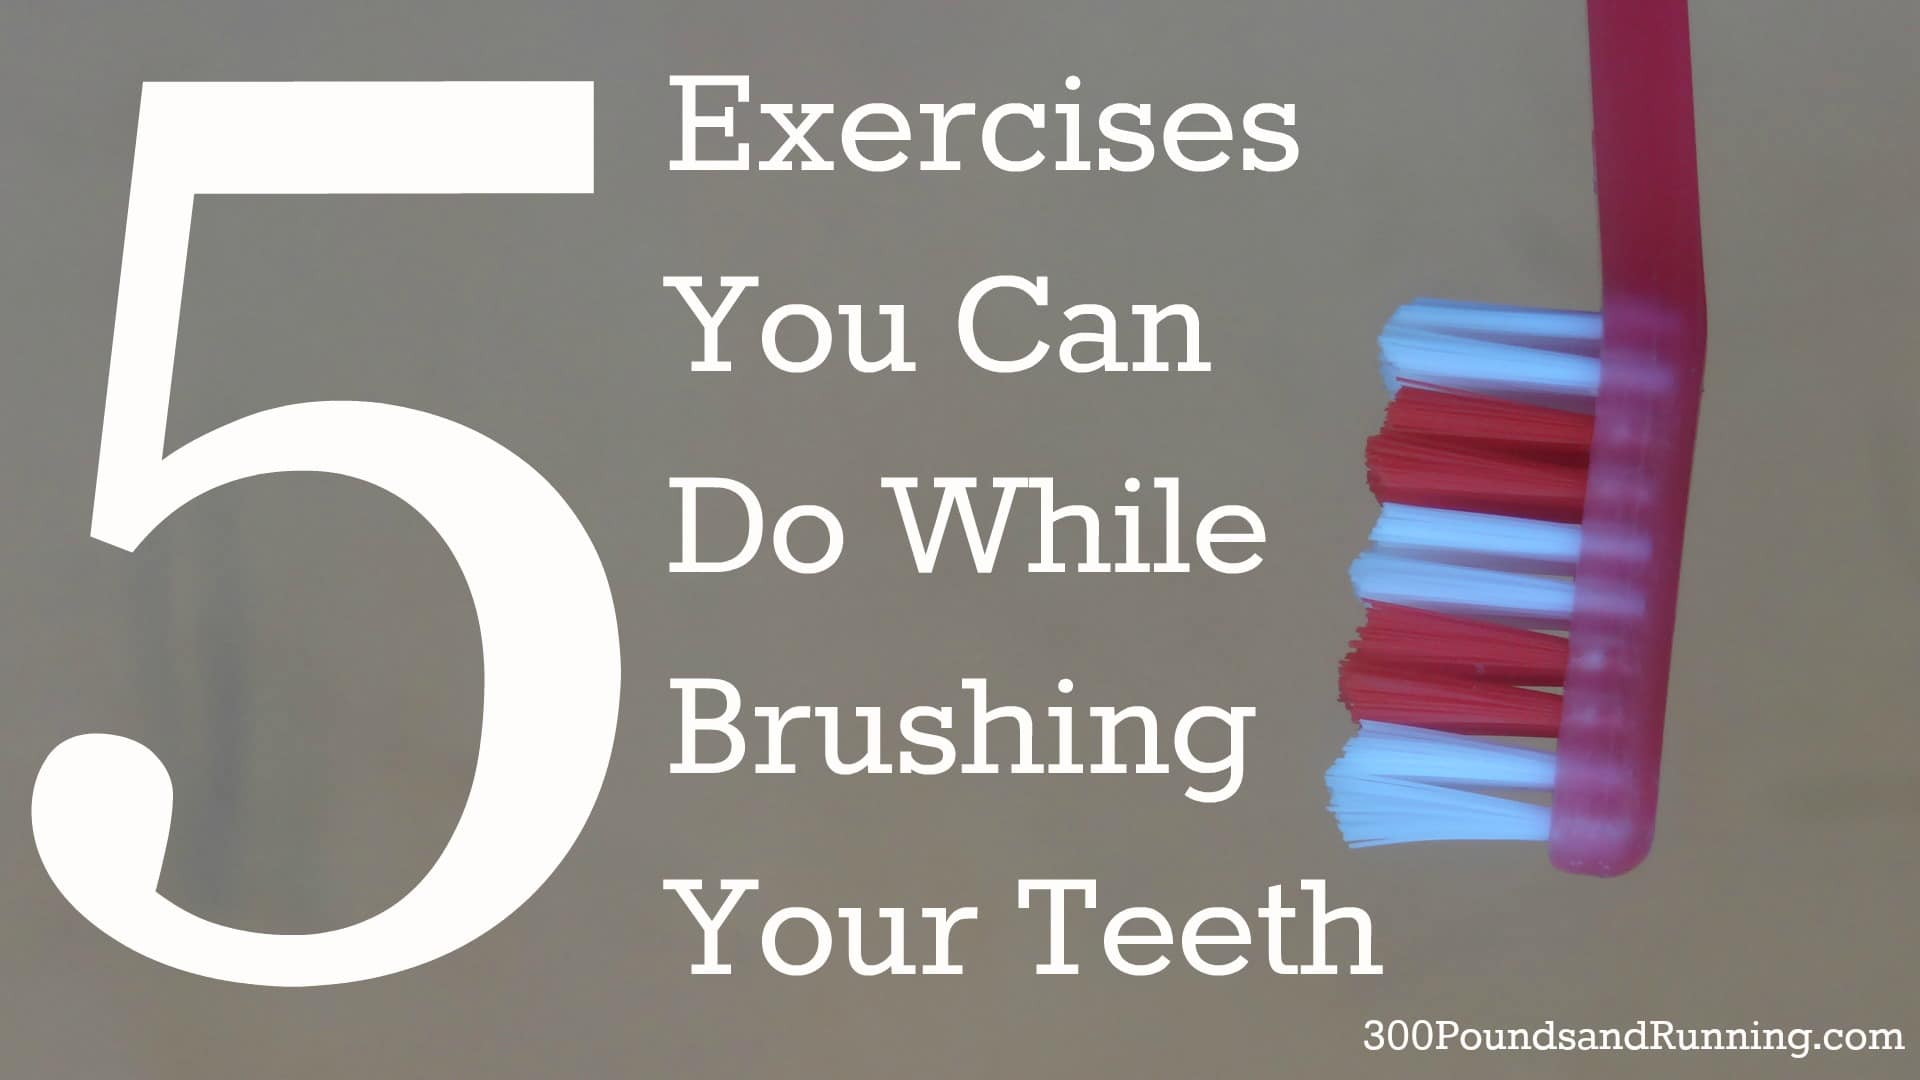 Five Exercises You Can Do While Brushing Your Teeth